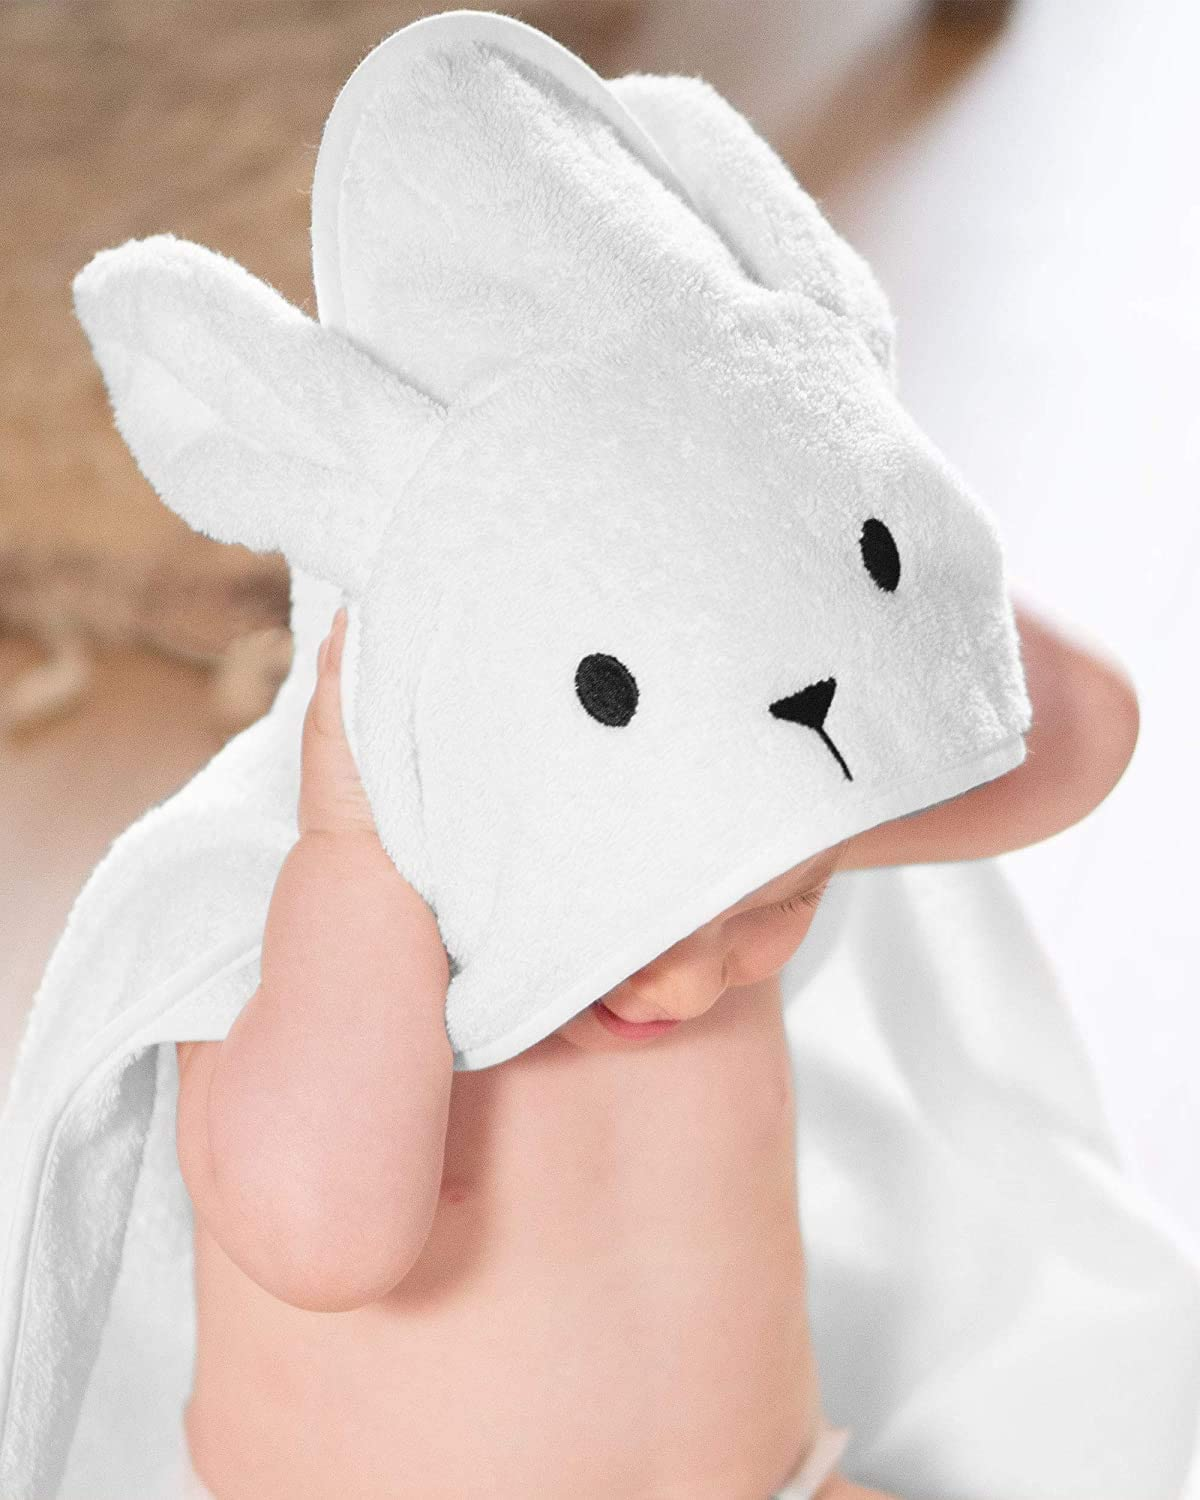 Powder Blue Imperium 11 100/% Soft Cotton Hooded Bunny Rabbit Unisex Baby Kids Childern Towel Wrap up in 5 Colours